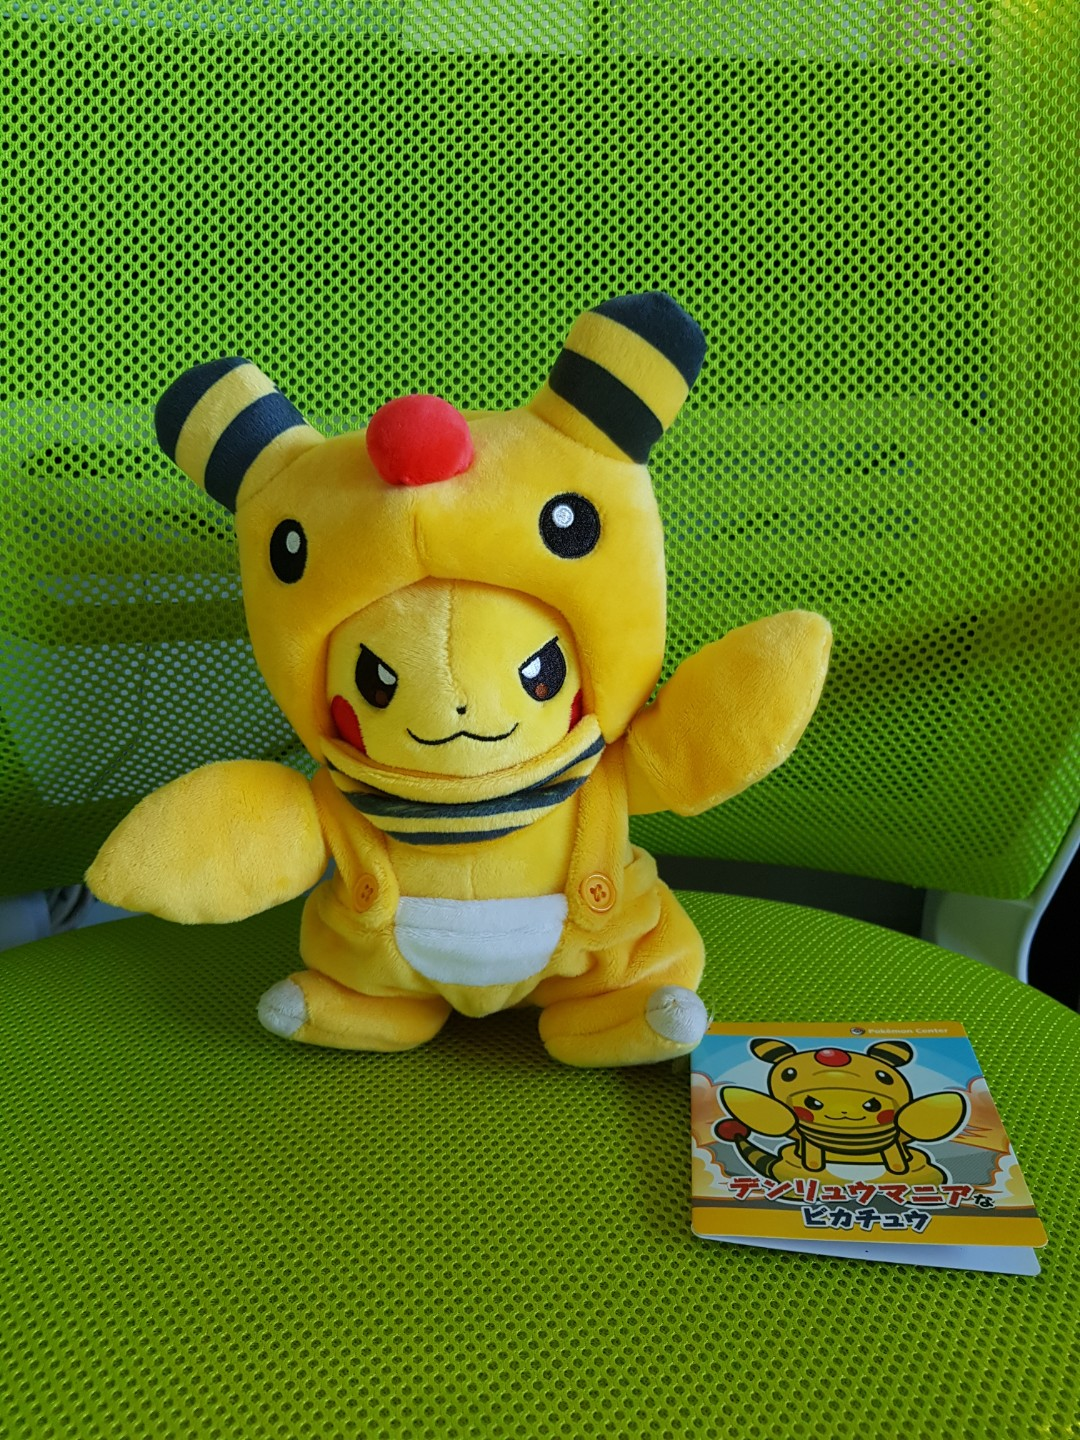 pikachu in a suit